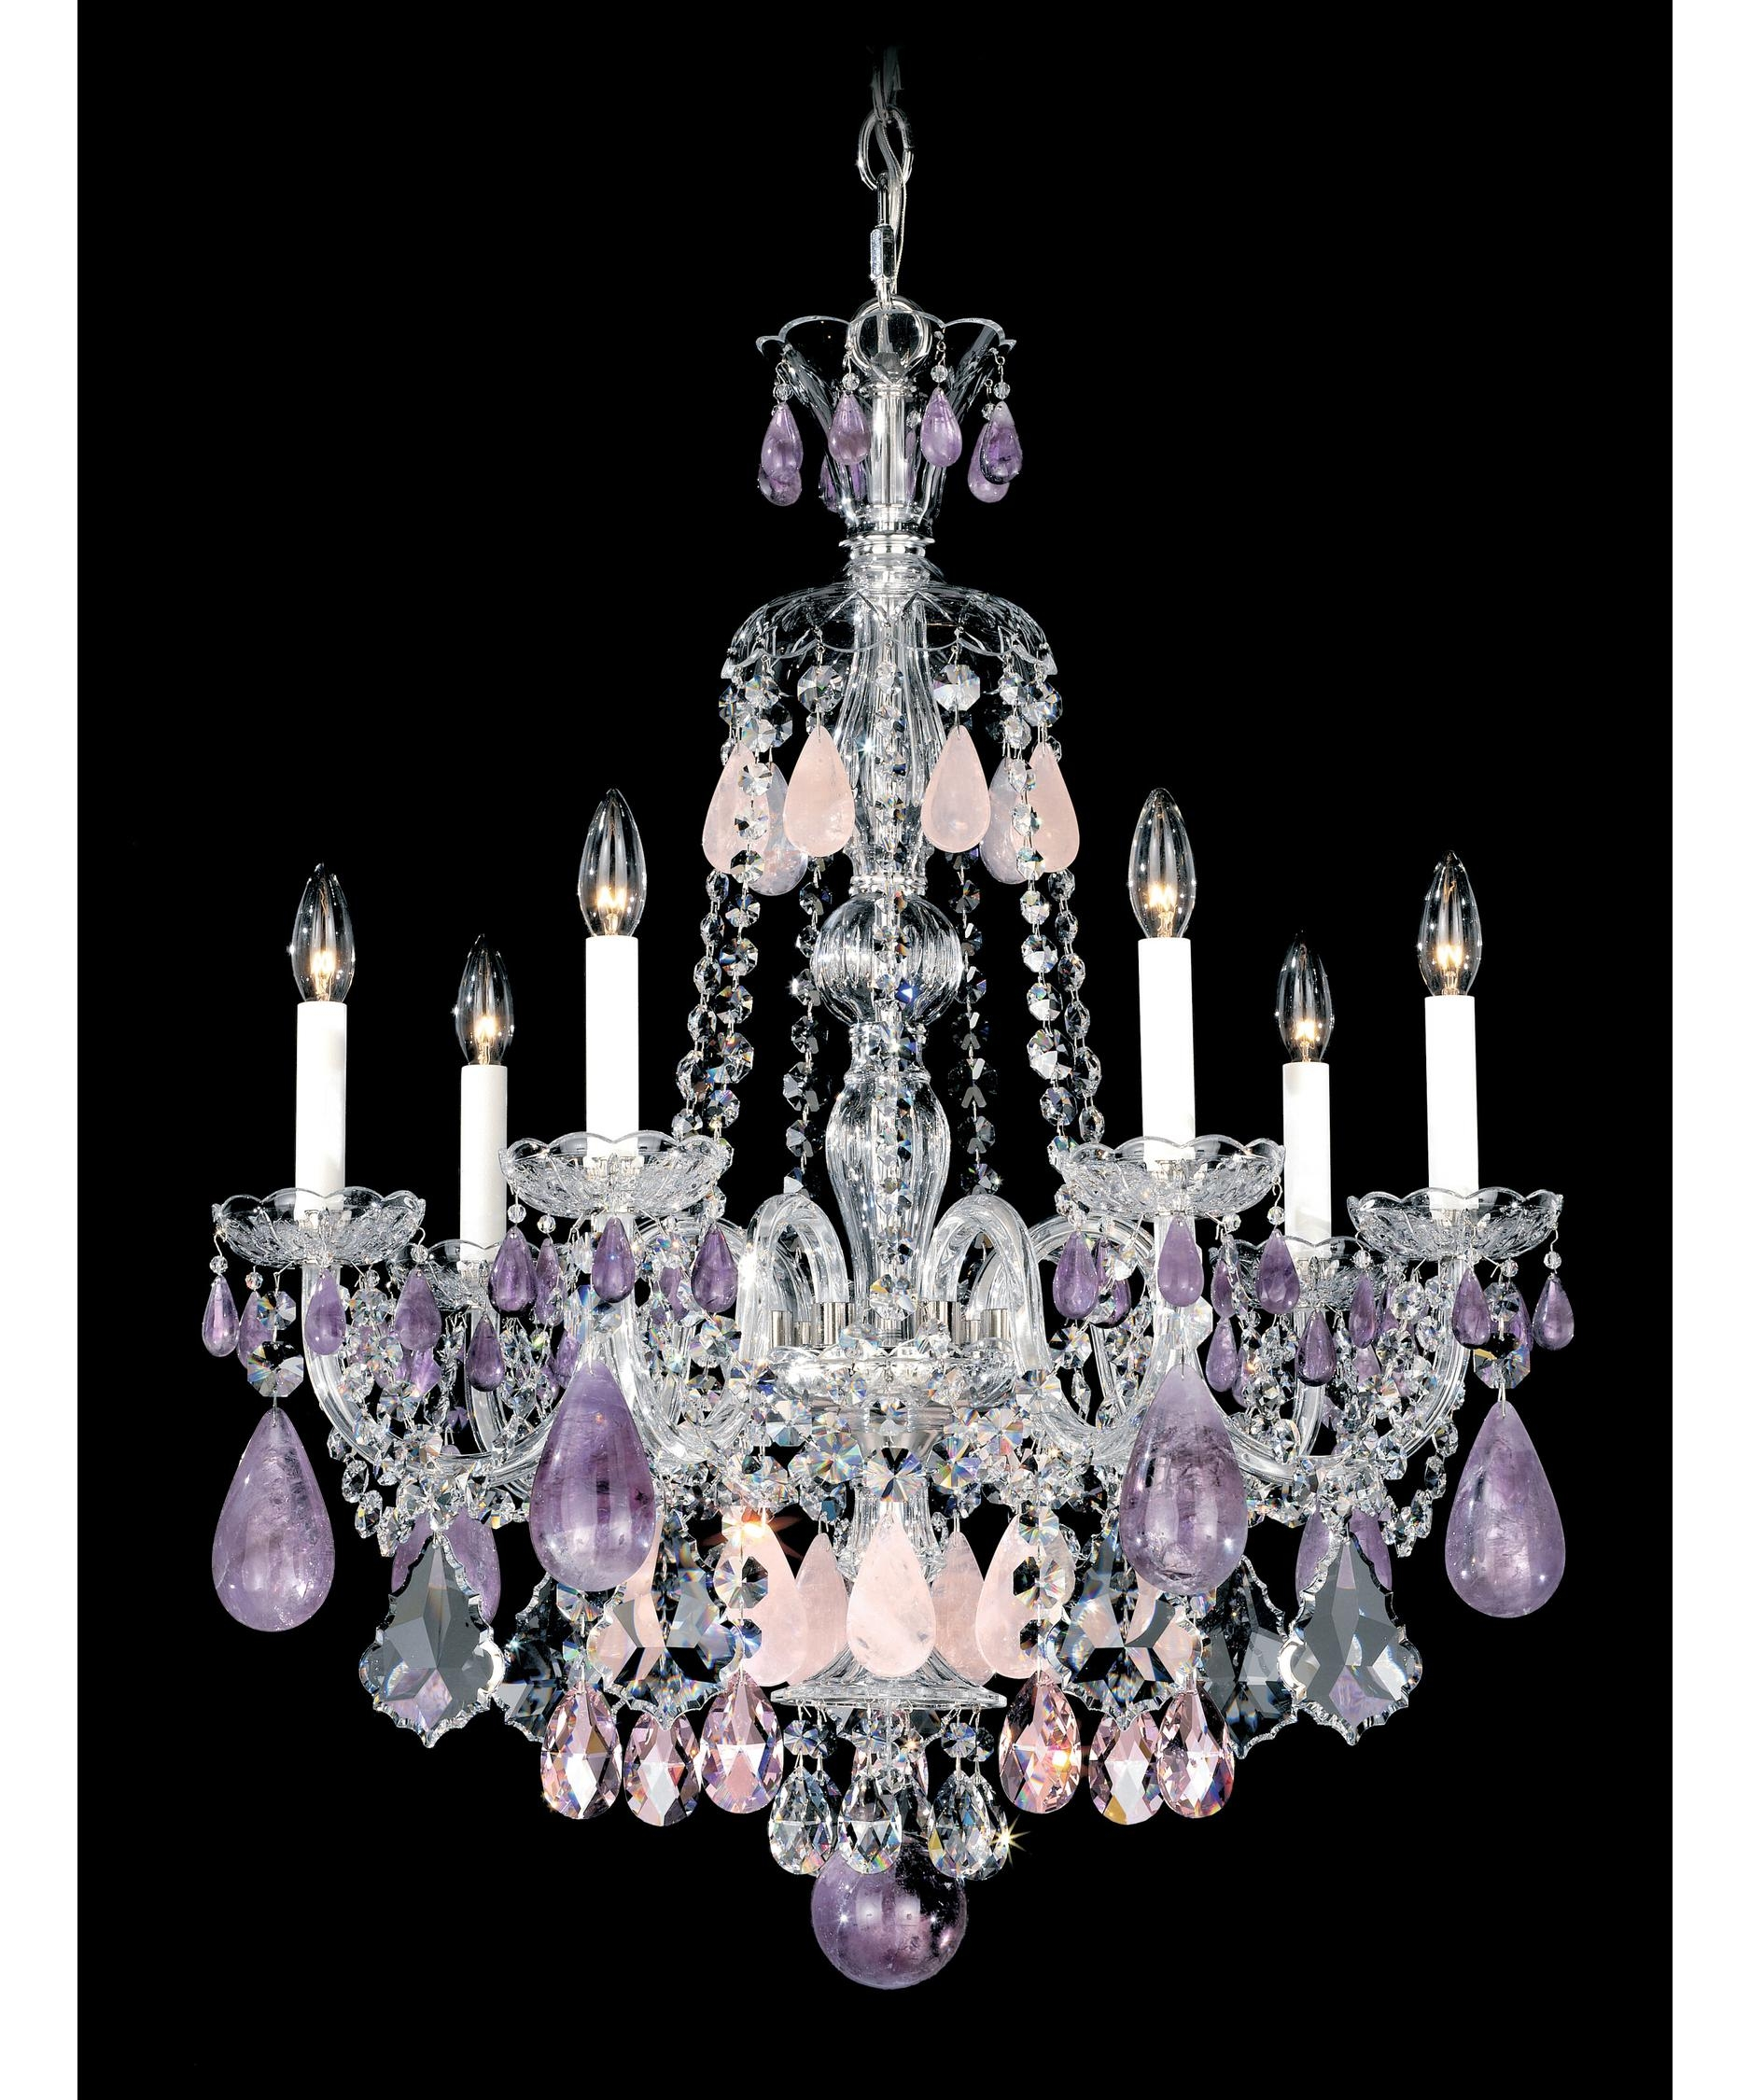 Schonbek 5536 Hamilton Rock Crystal 24 Inch Wide 7 Light Regarding Purple Crystal Chandelier Lights (Image 22 of 25)